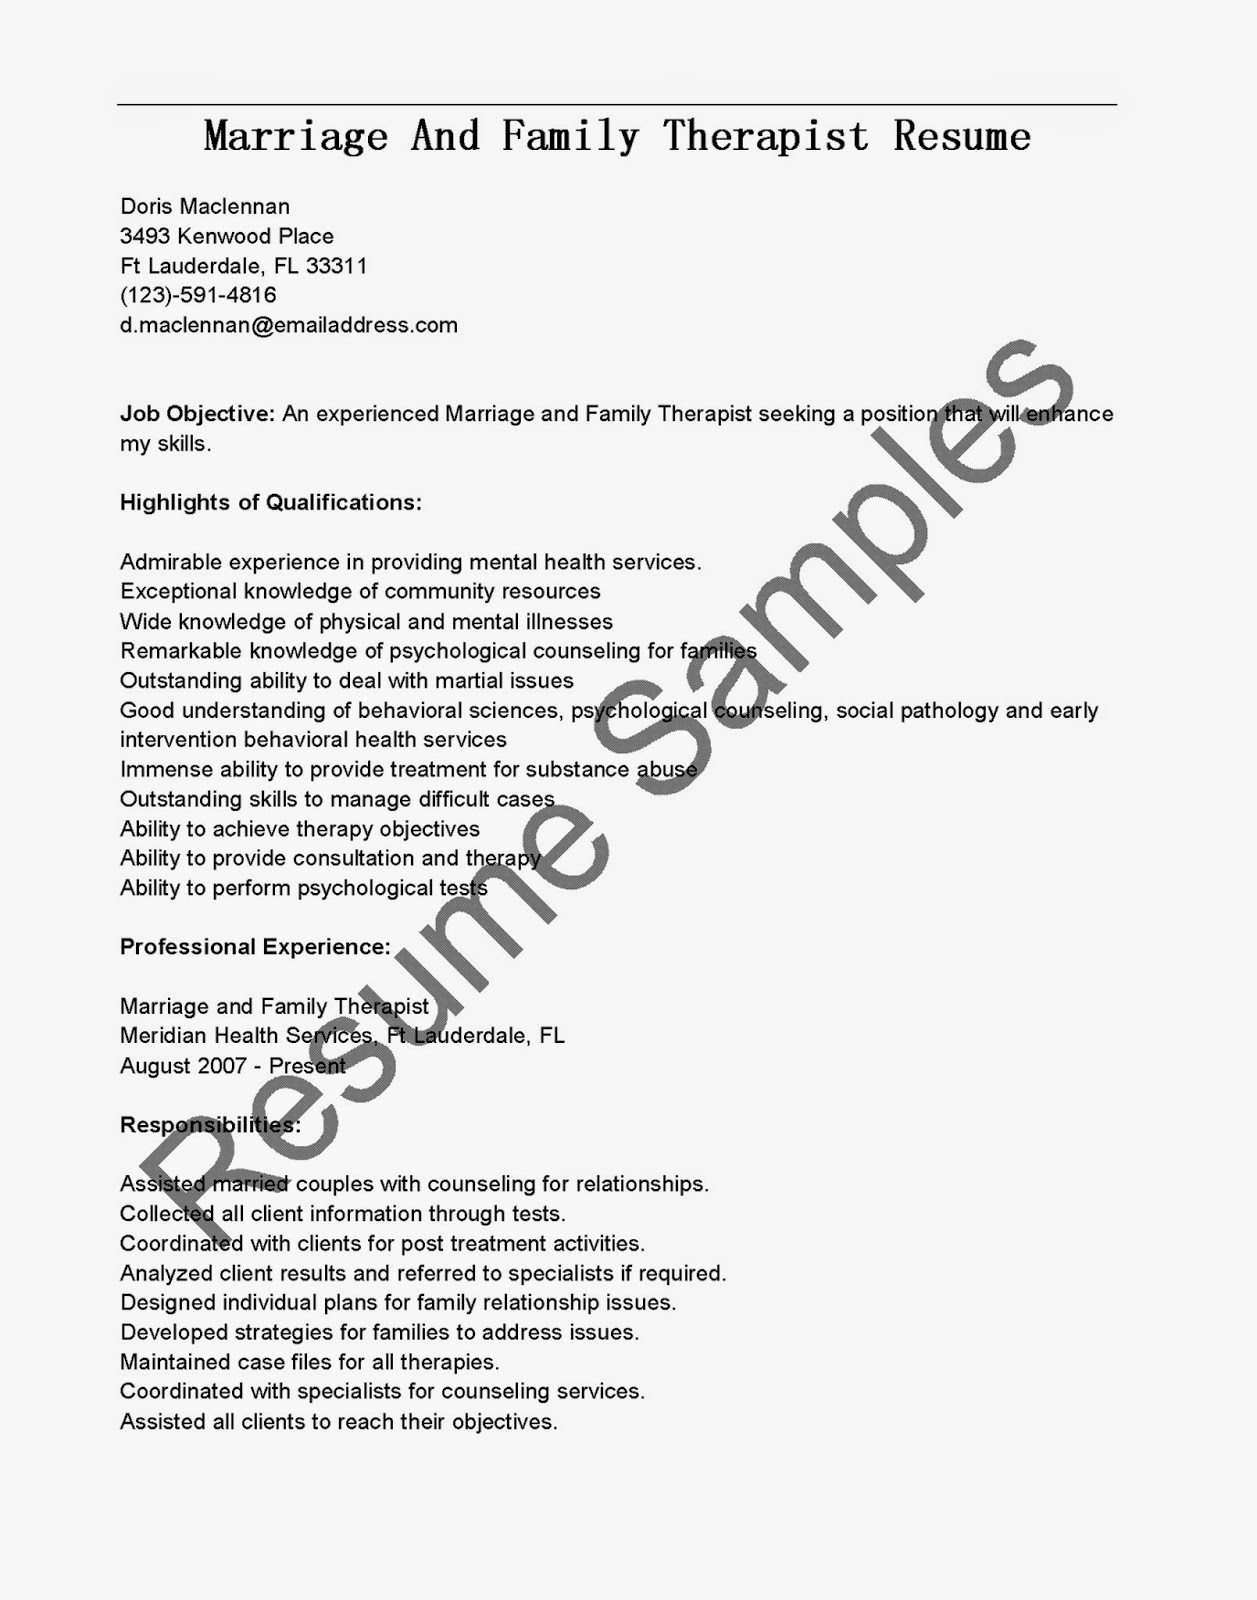 resume samples marriage and family therapist highlights sample for experienced marketing Resume Marriage And Family Therapist Resume